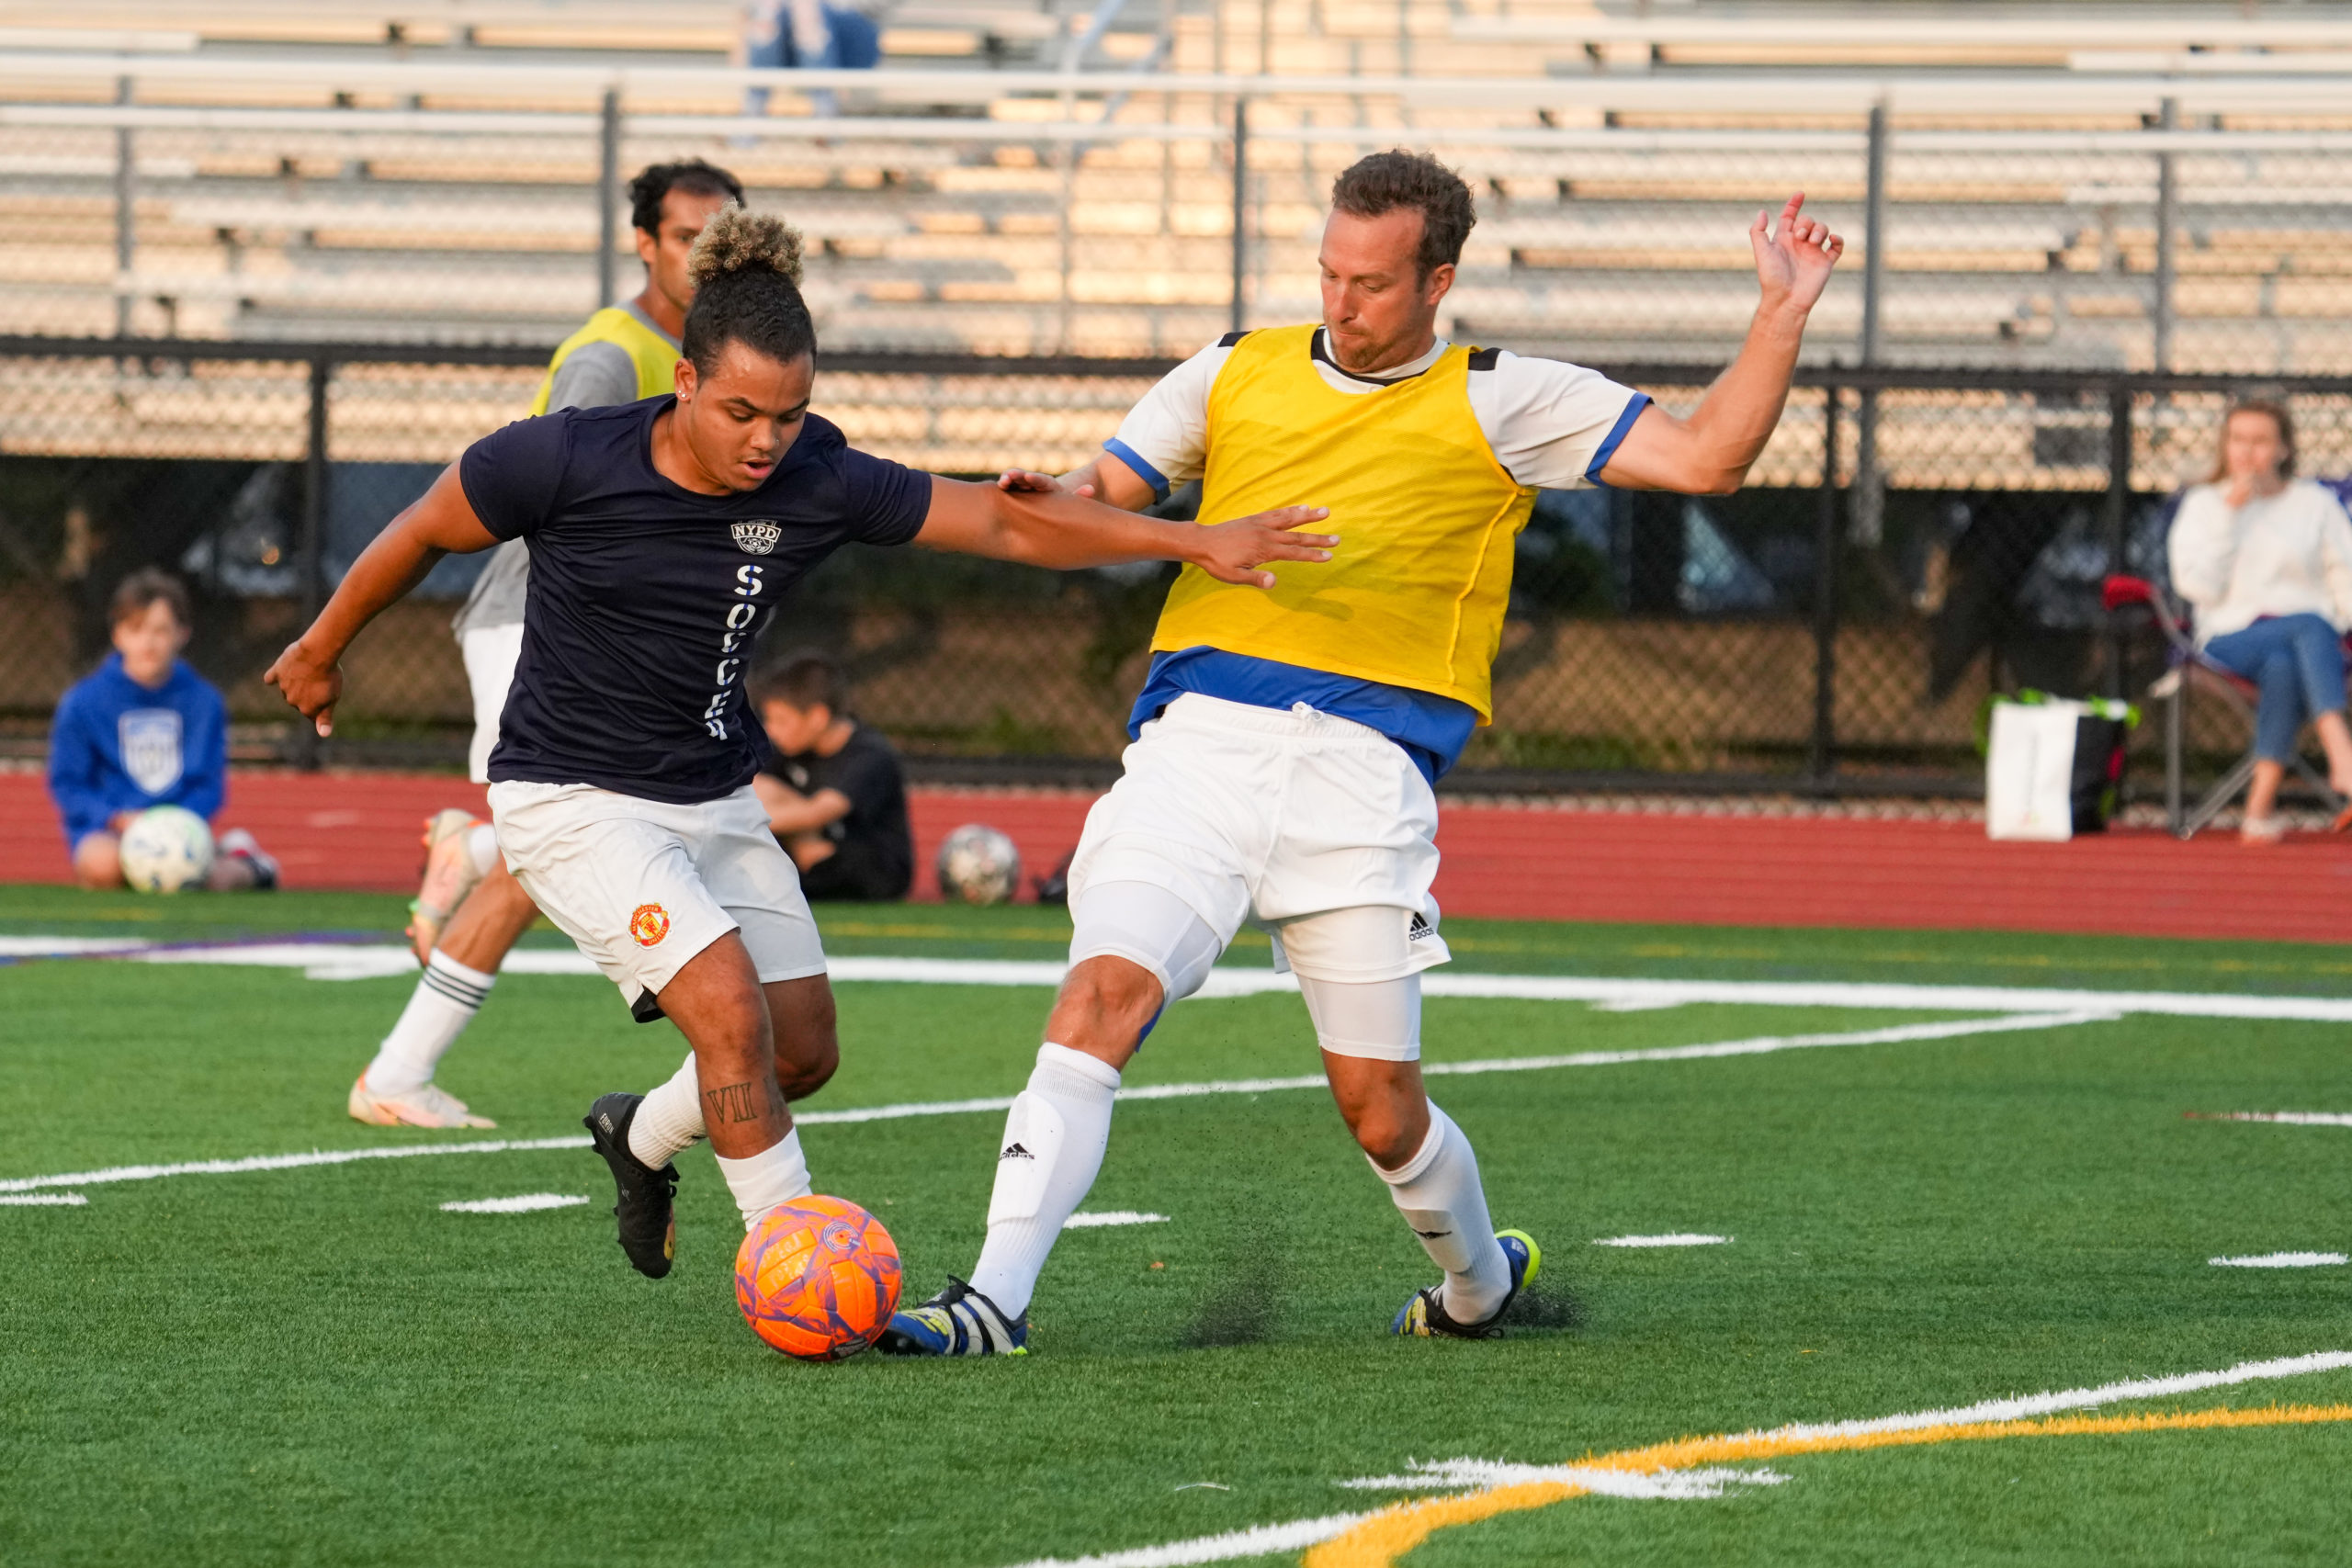 Colonial Sports Group coaches played a game against players from the New York's Finest Soccer Club.